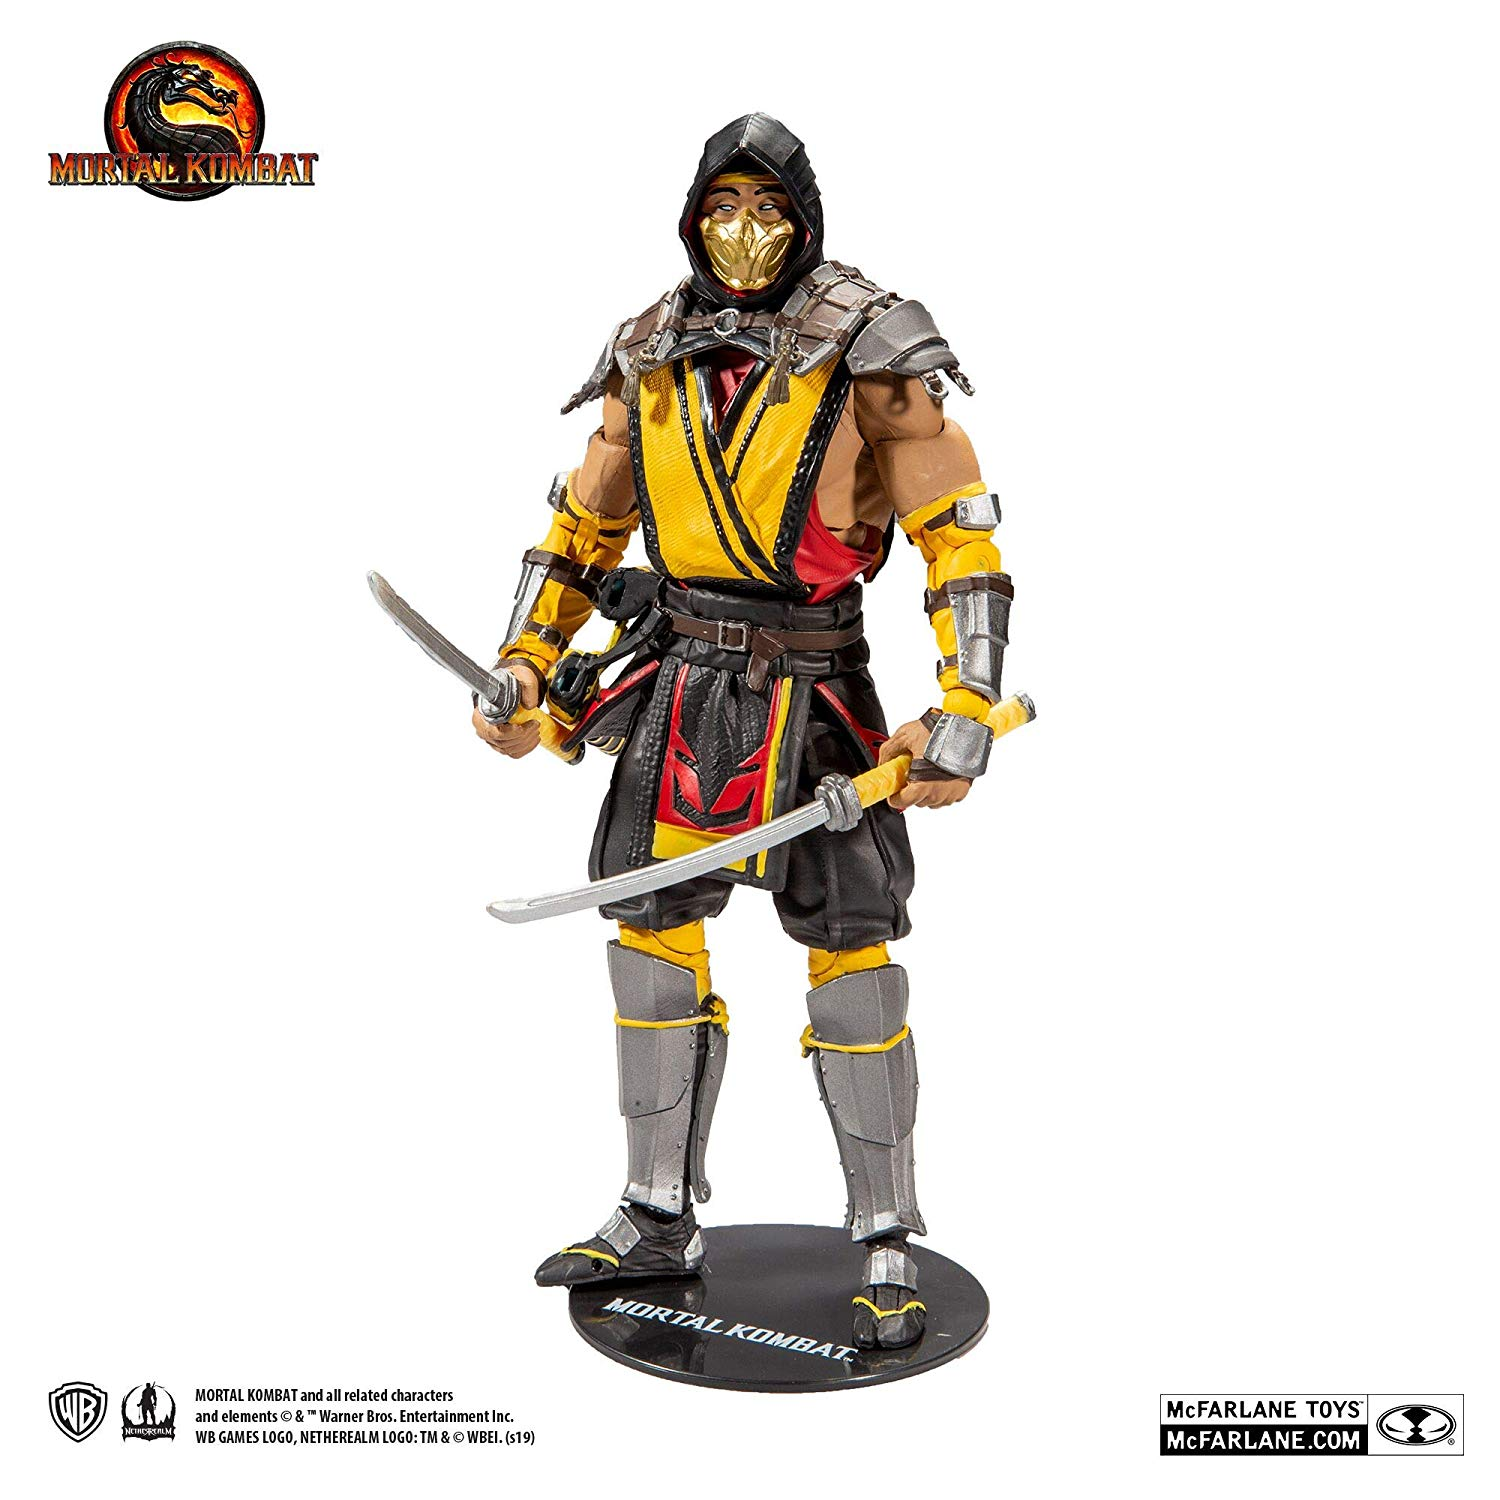 Official Photos Of The Mortal Kombat 11 Scorpion By Mcfarlane Toys